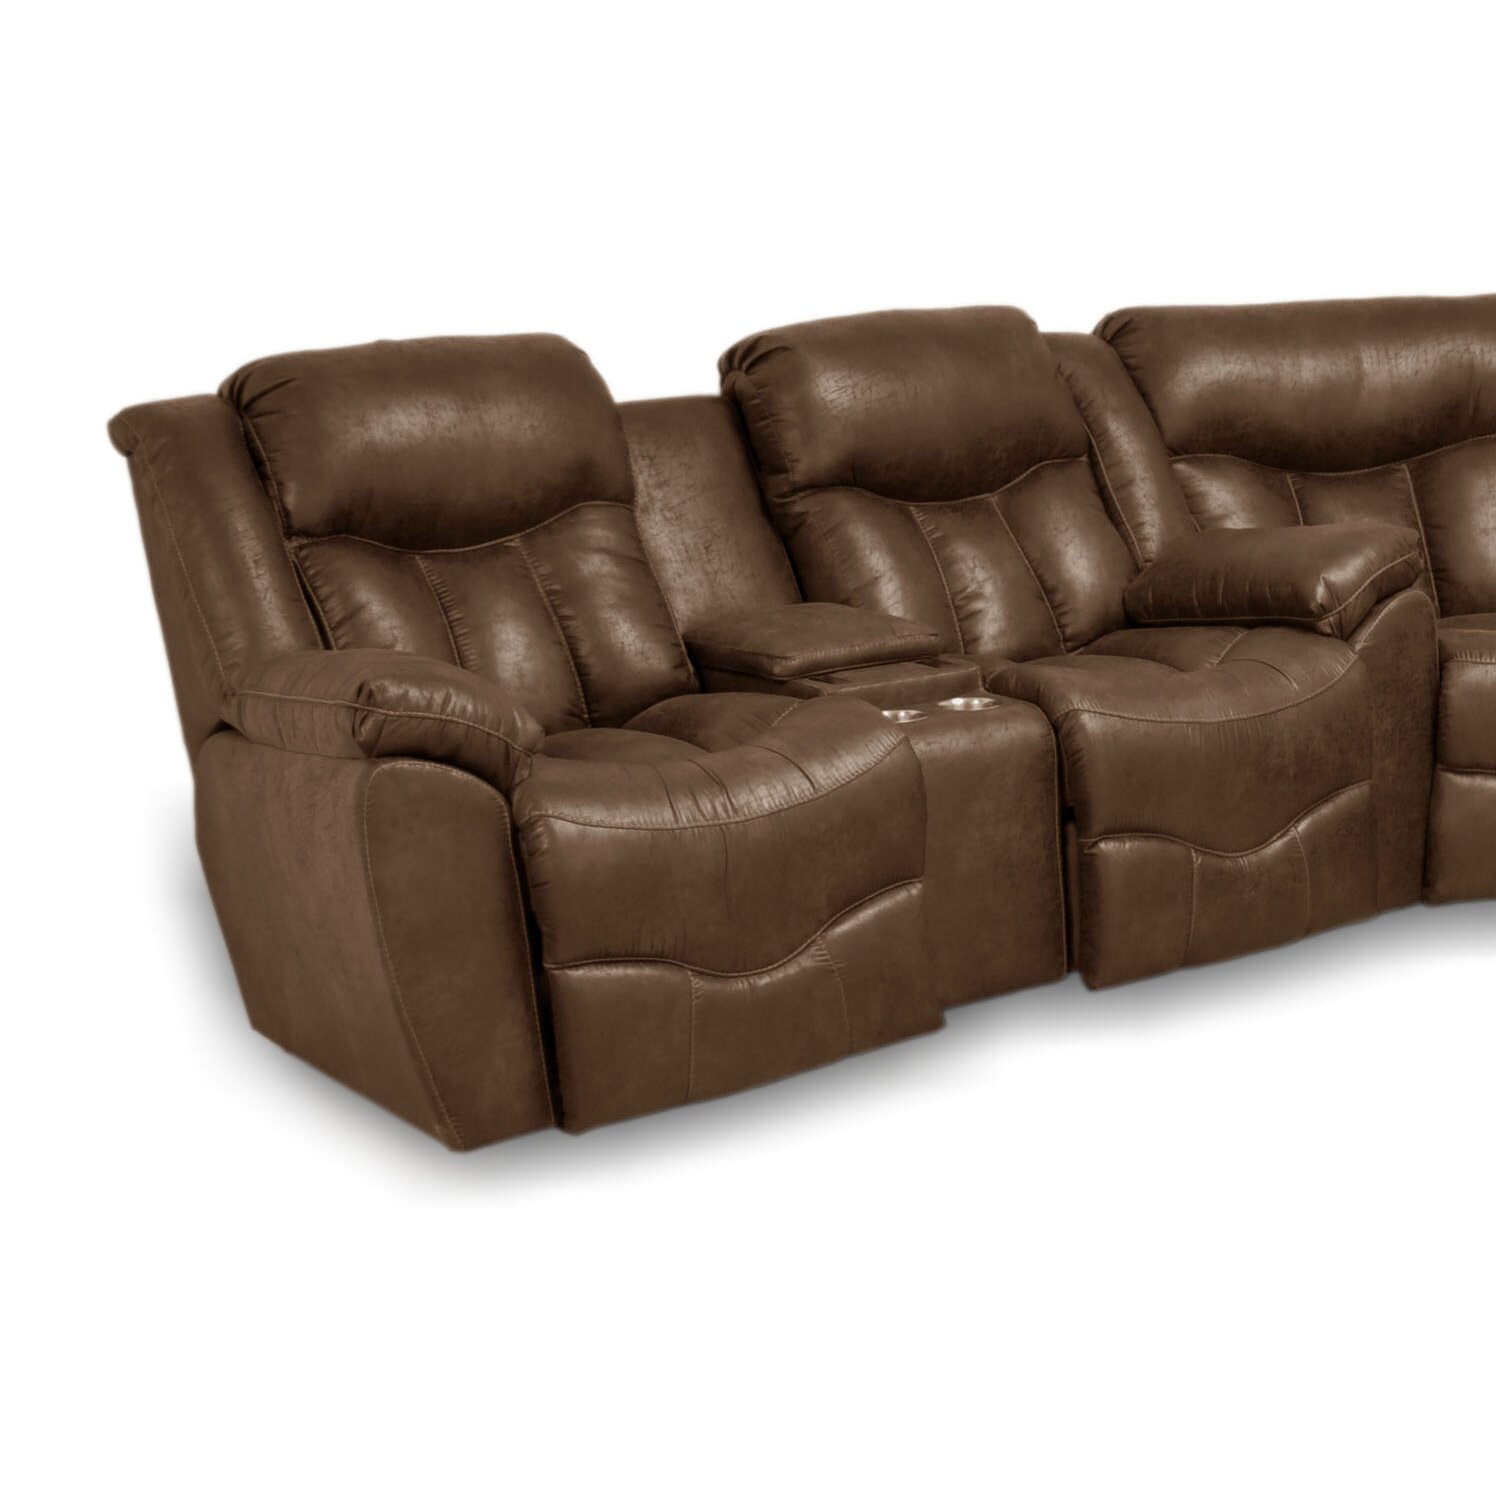 Red barrel studio jenkins power motion reclining sofa Power reclining sofas and loveseats